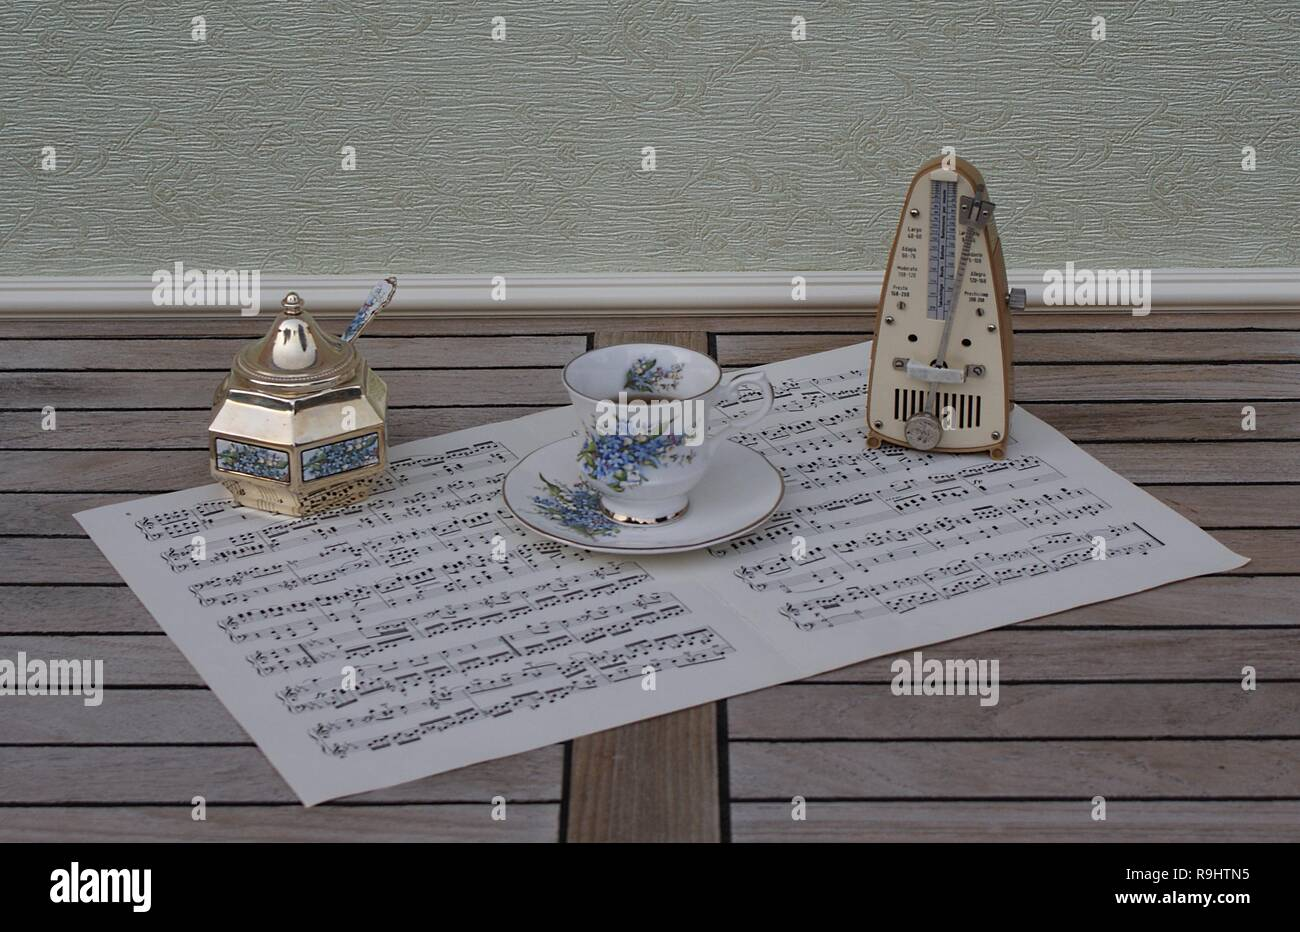 English teacup and saucer, sugar bowl and sugarspoon, with floral decor, and metronome for music on a sheet of music - Stock Image